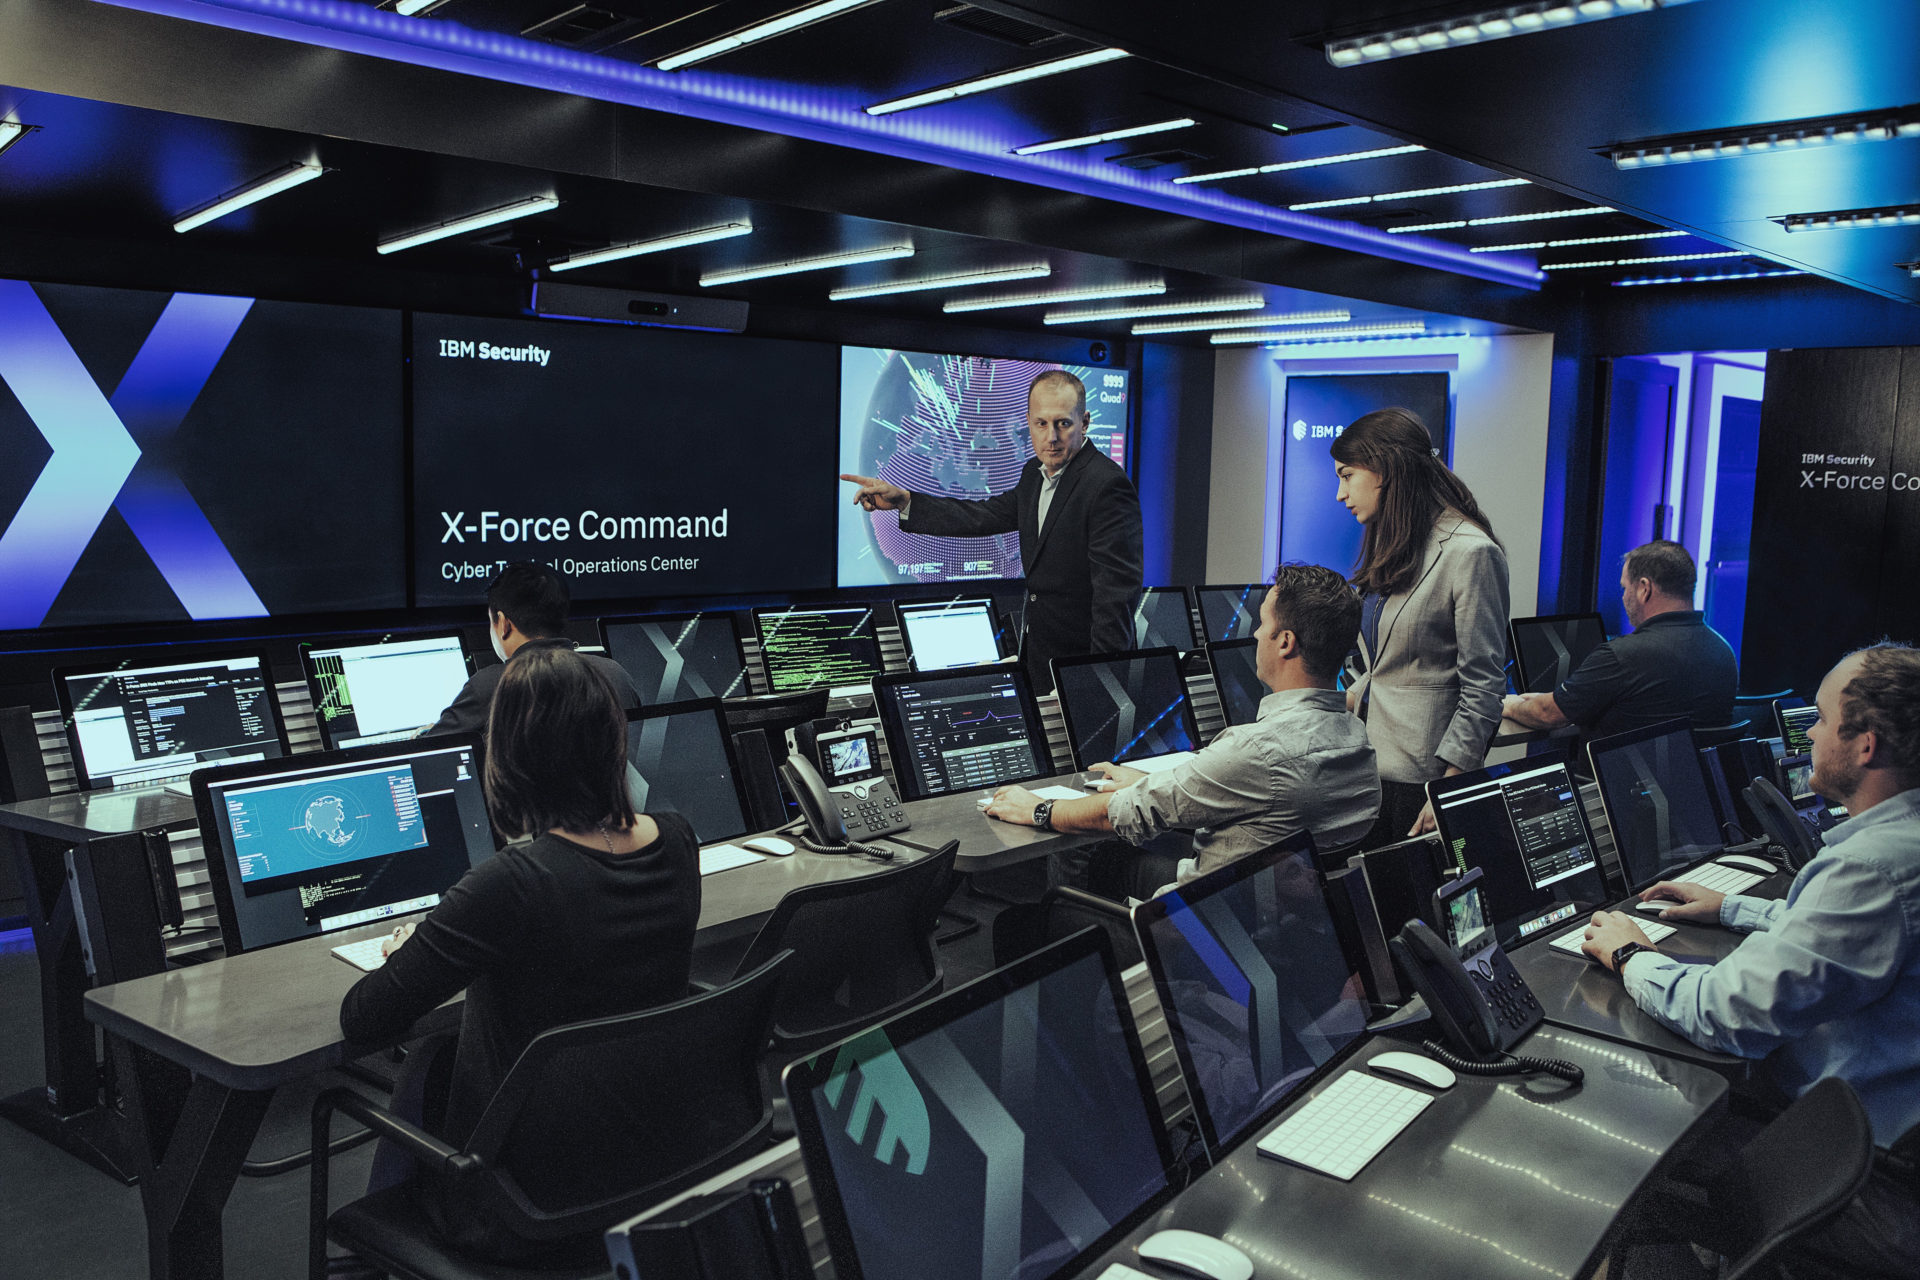 Watch: How IBM's hyper-realistic Cyber Tactical Operations Center is simulating cyberattacks